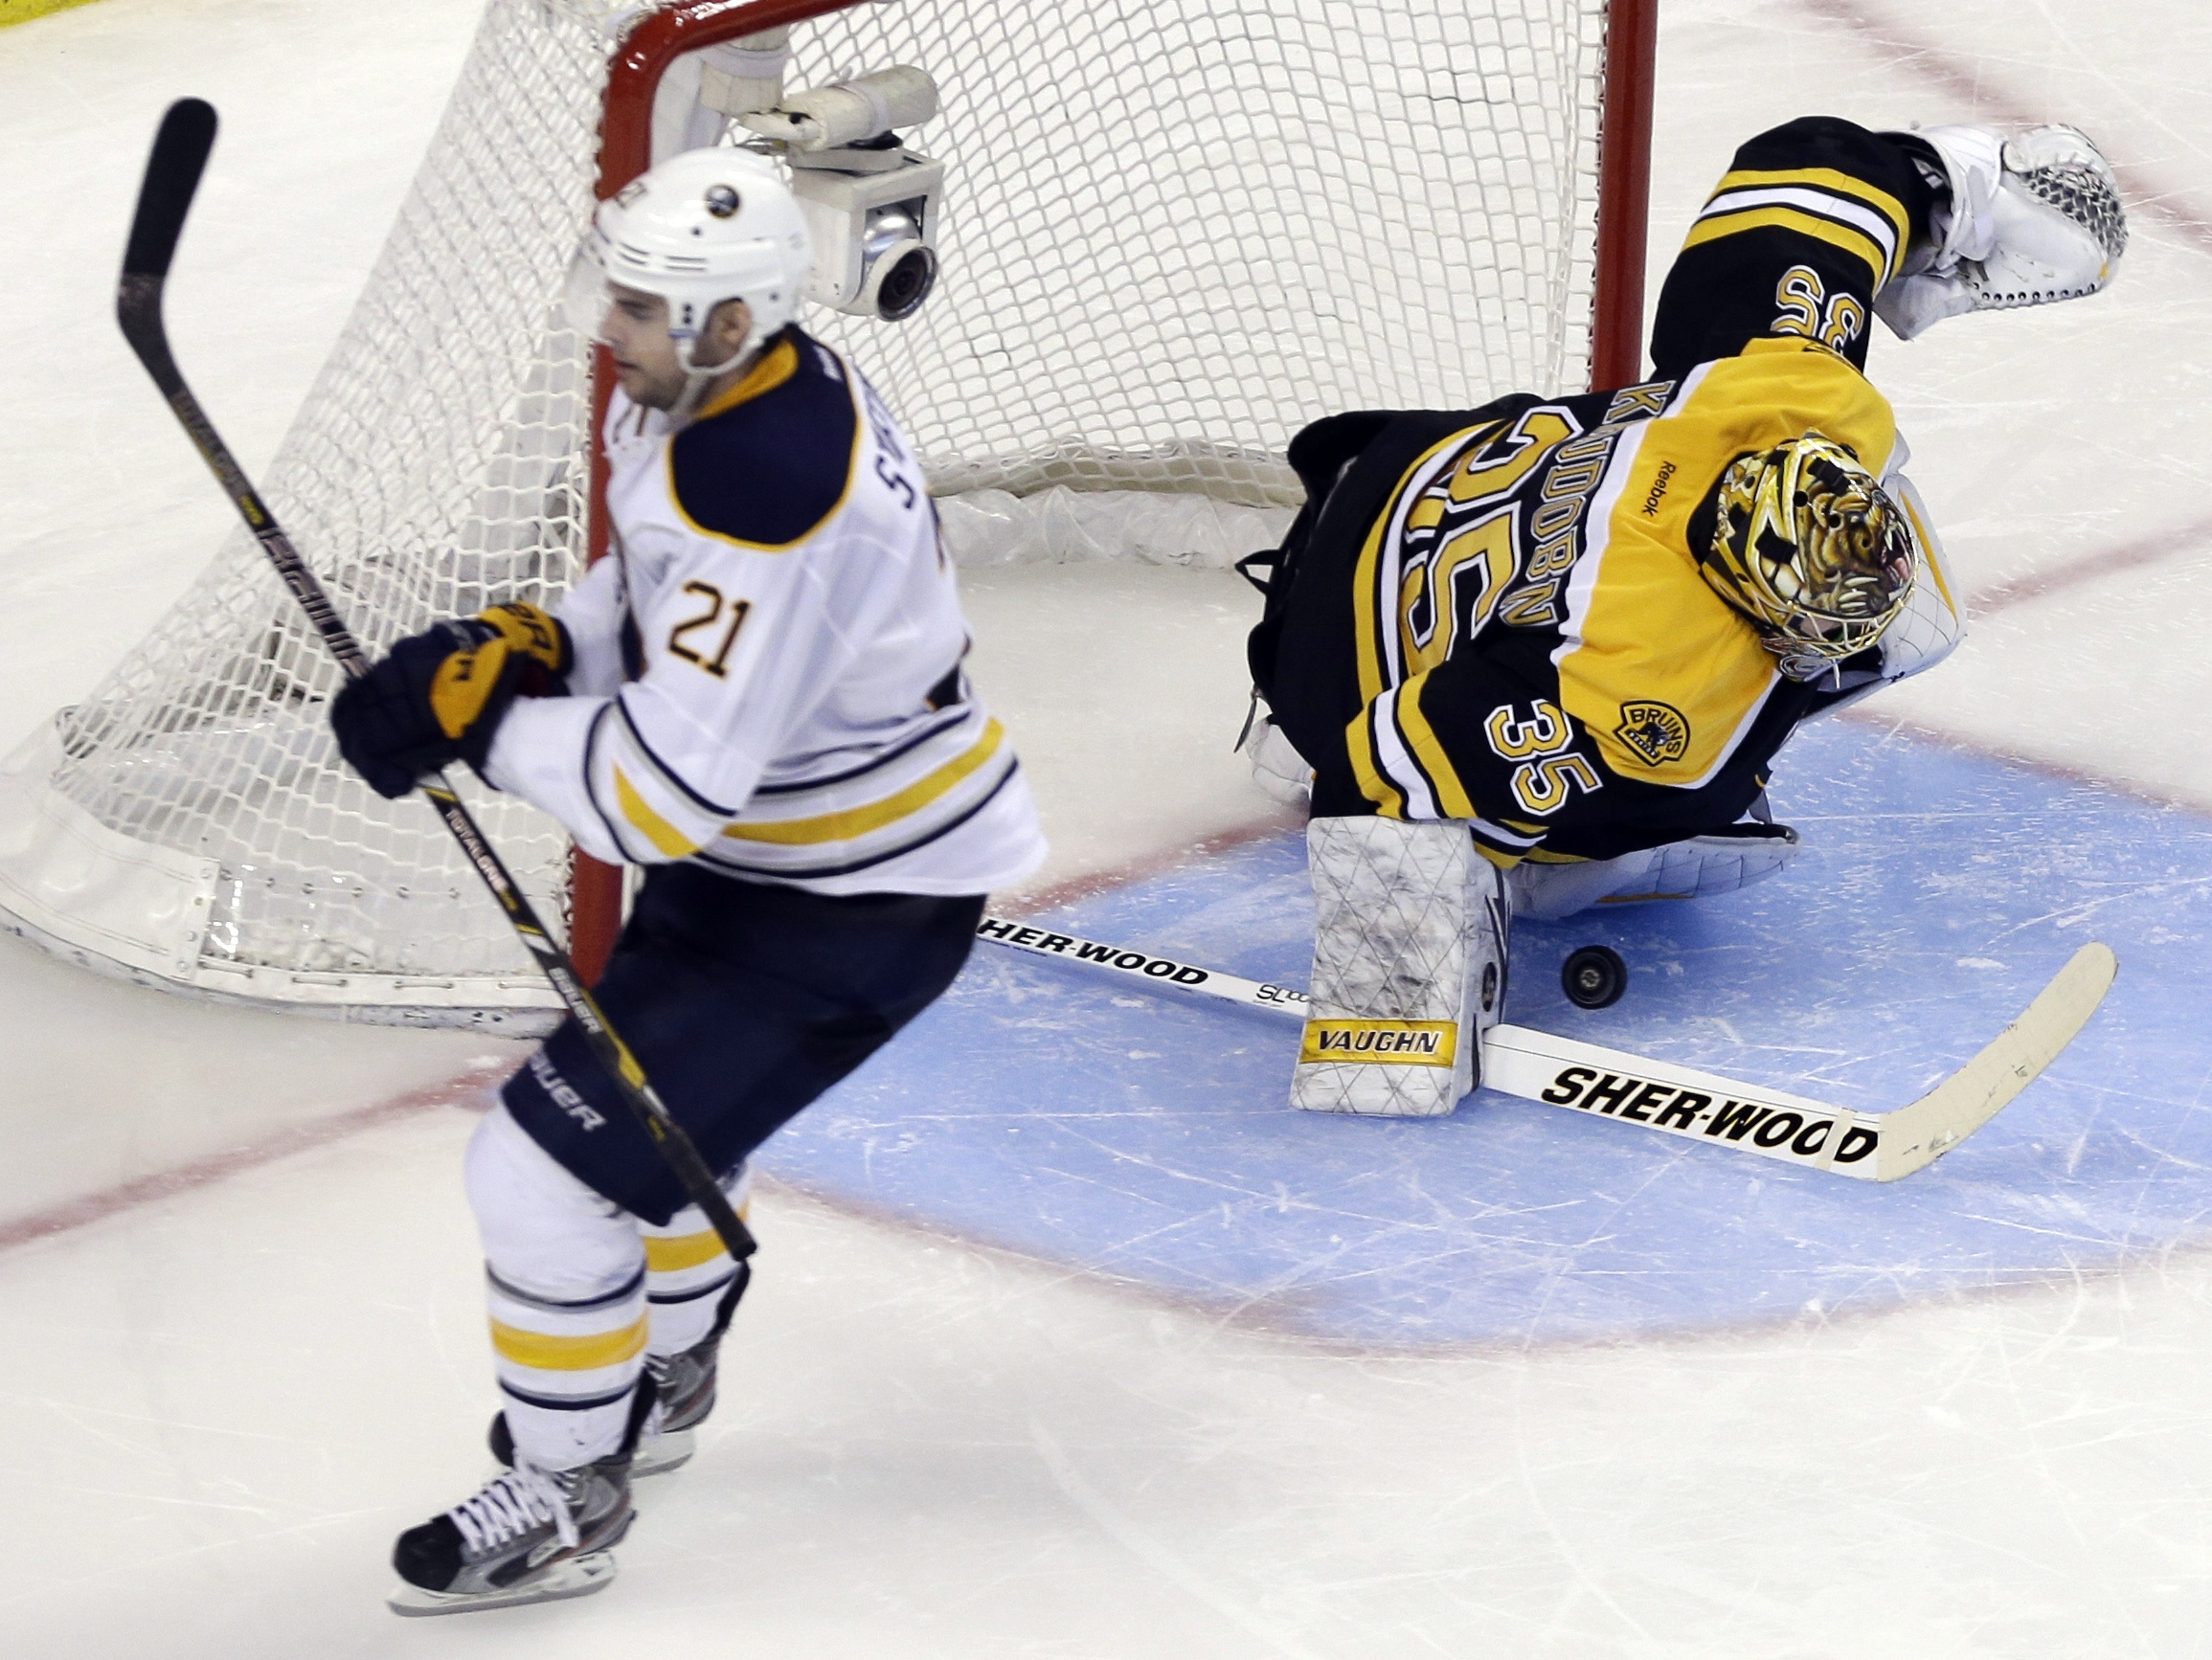 Sabres right wing Drew Stafford scored the only goal of the shootout on the sixth and final shot between the teams, beating Bruins goalie Anton Khudobin for a 3-2 victory.